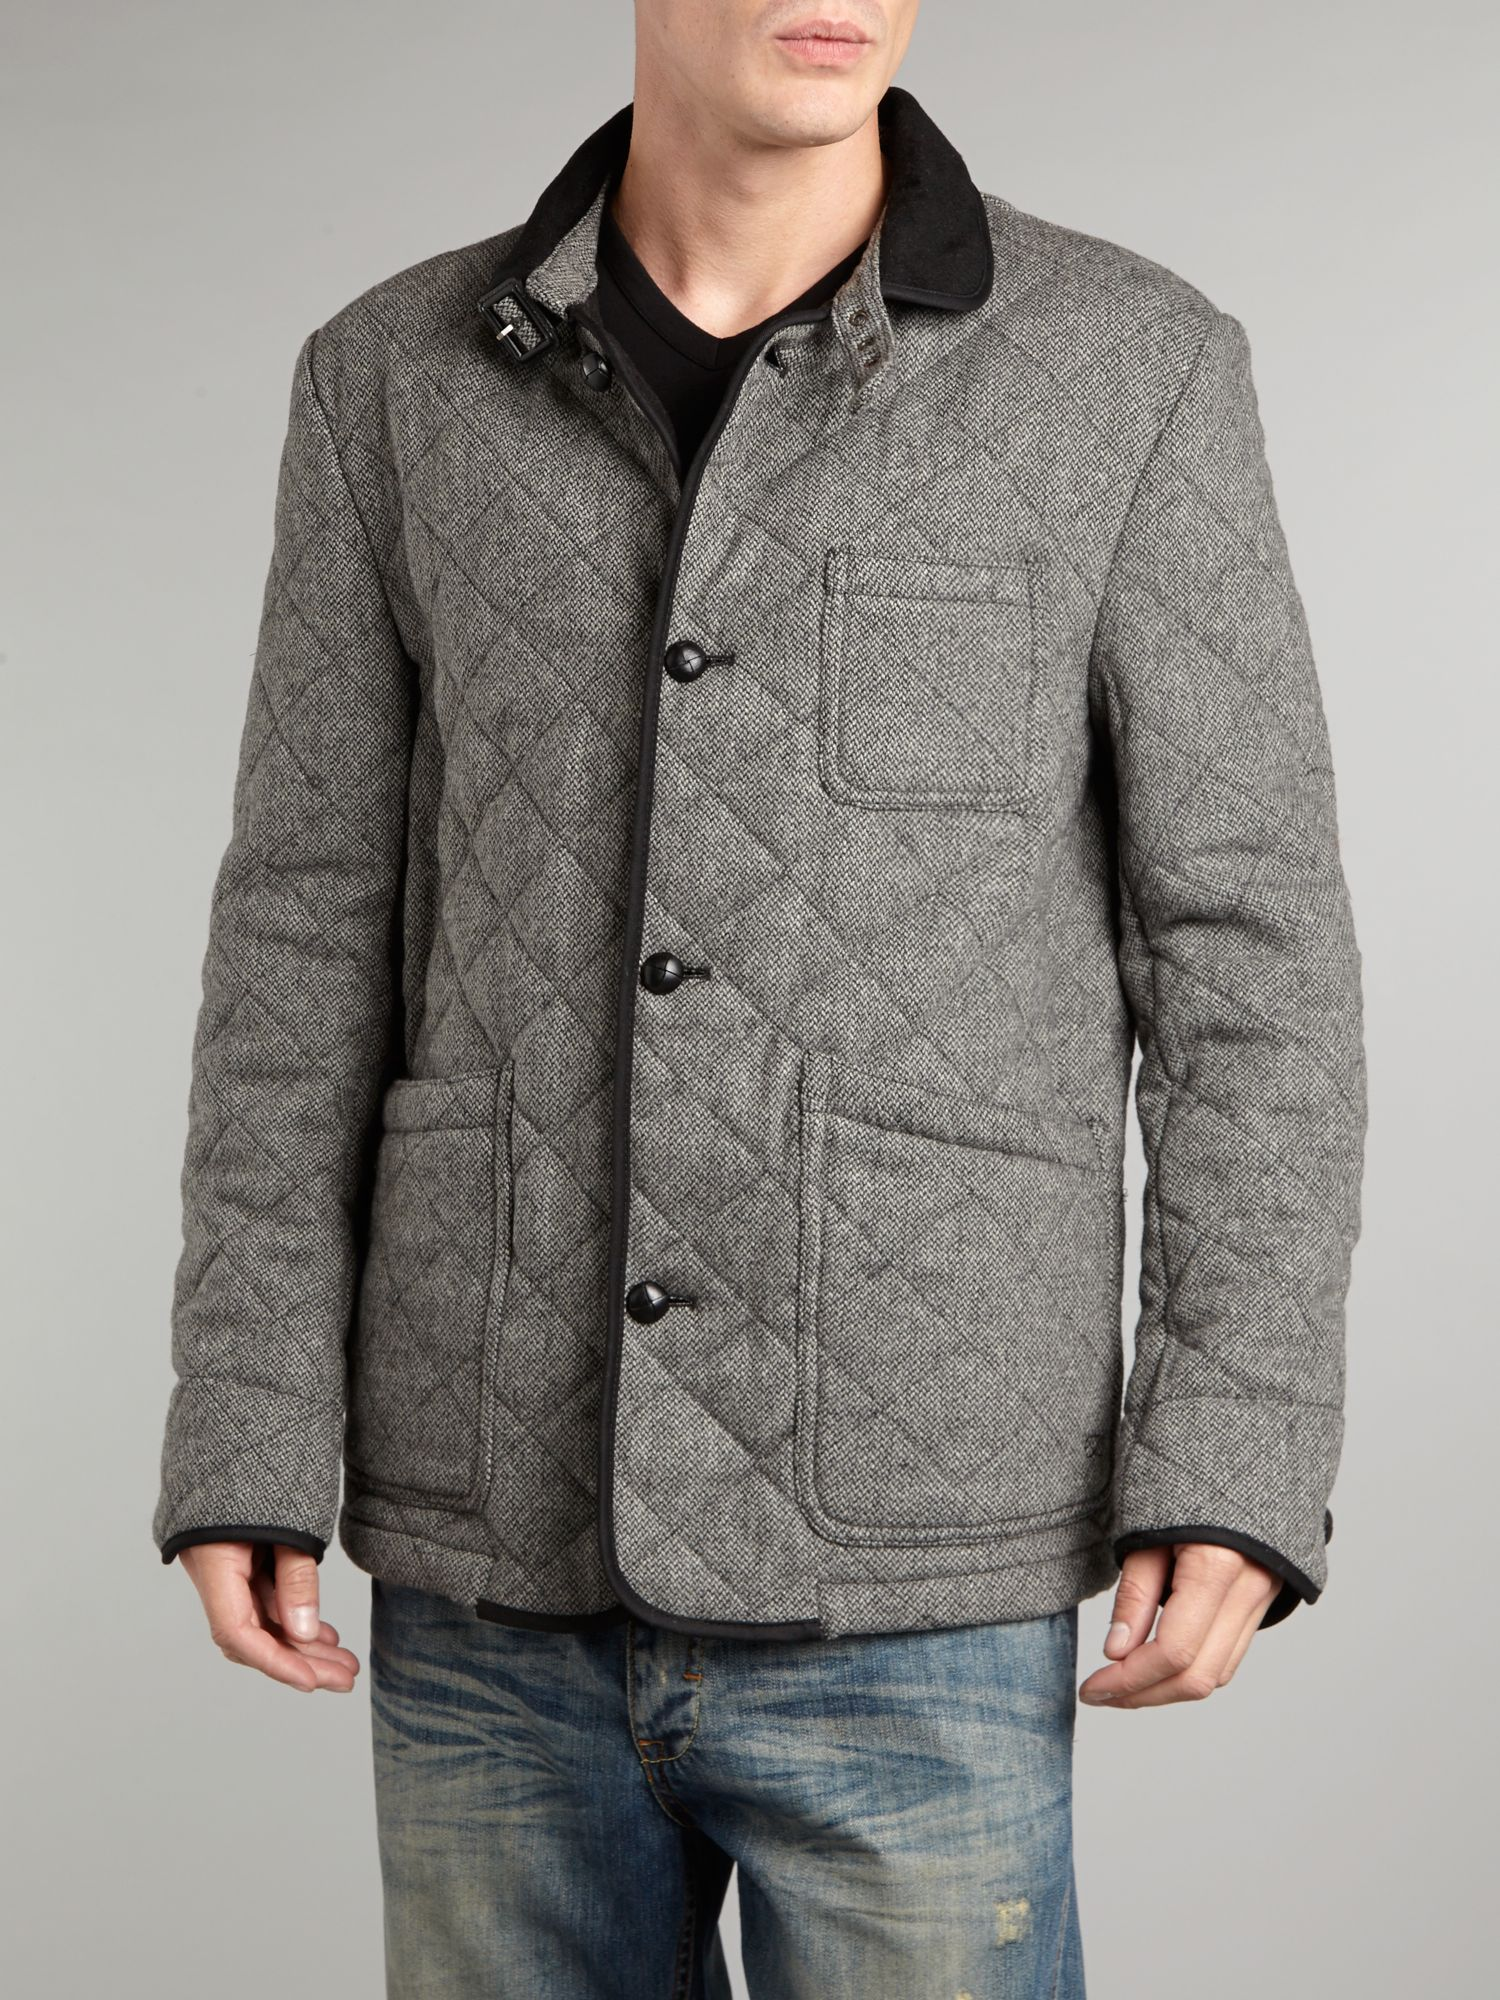 Quilt barn tweed jacket